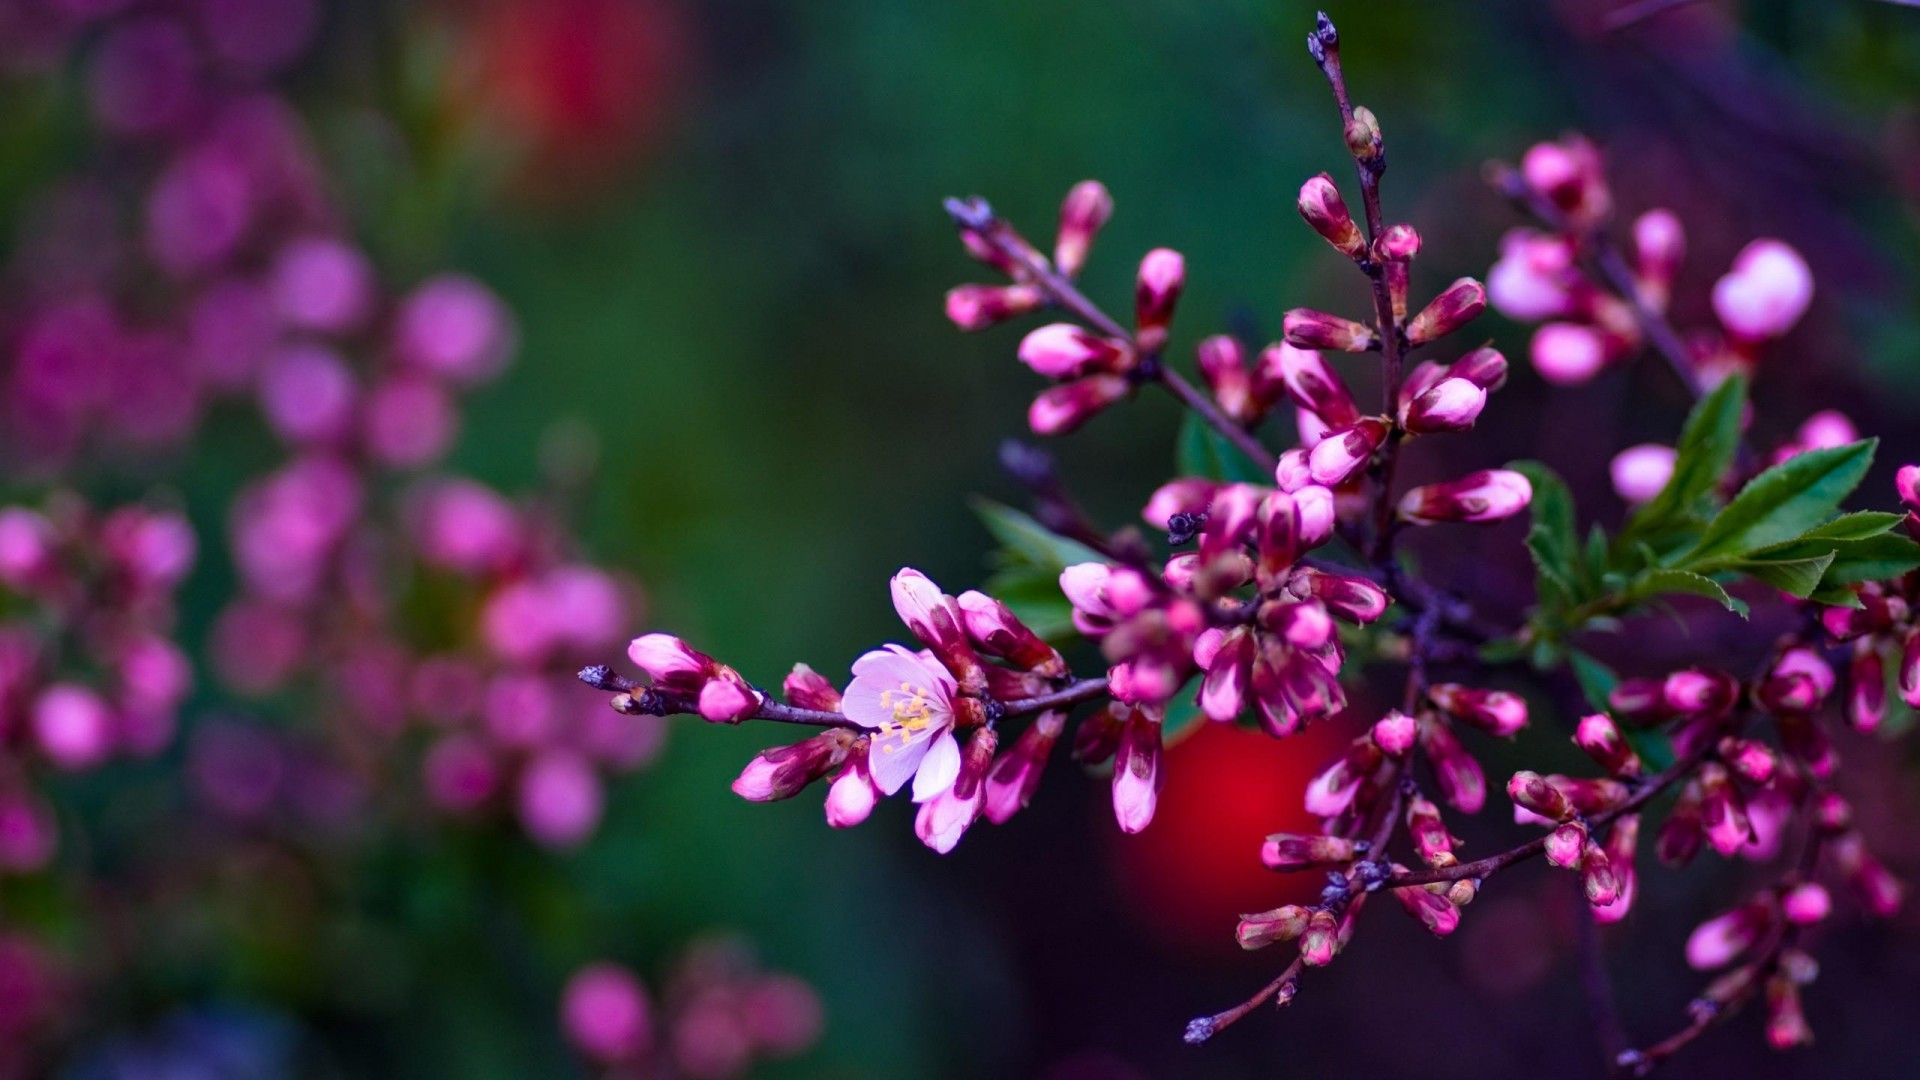 Spring Flowers Wallpaper Hd Natures Wallpapers